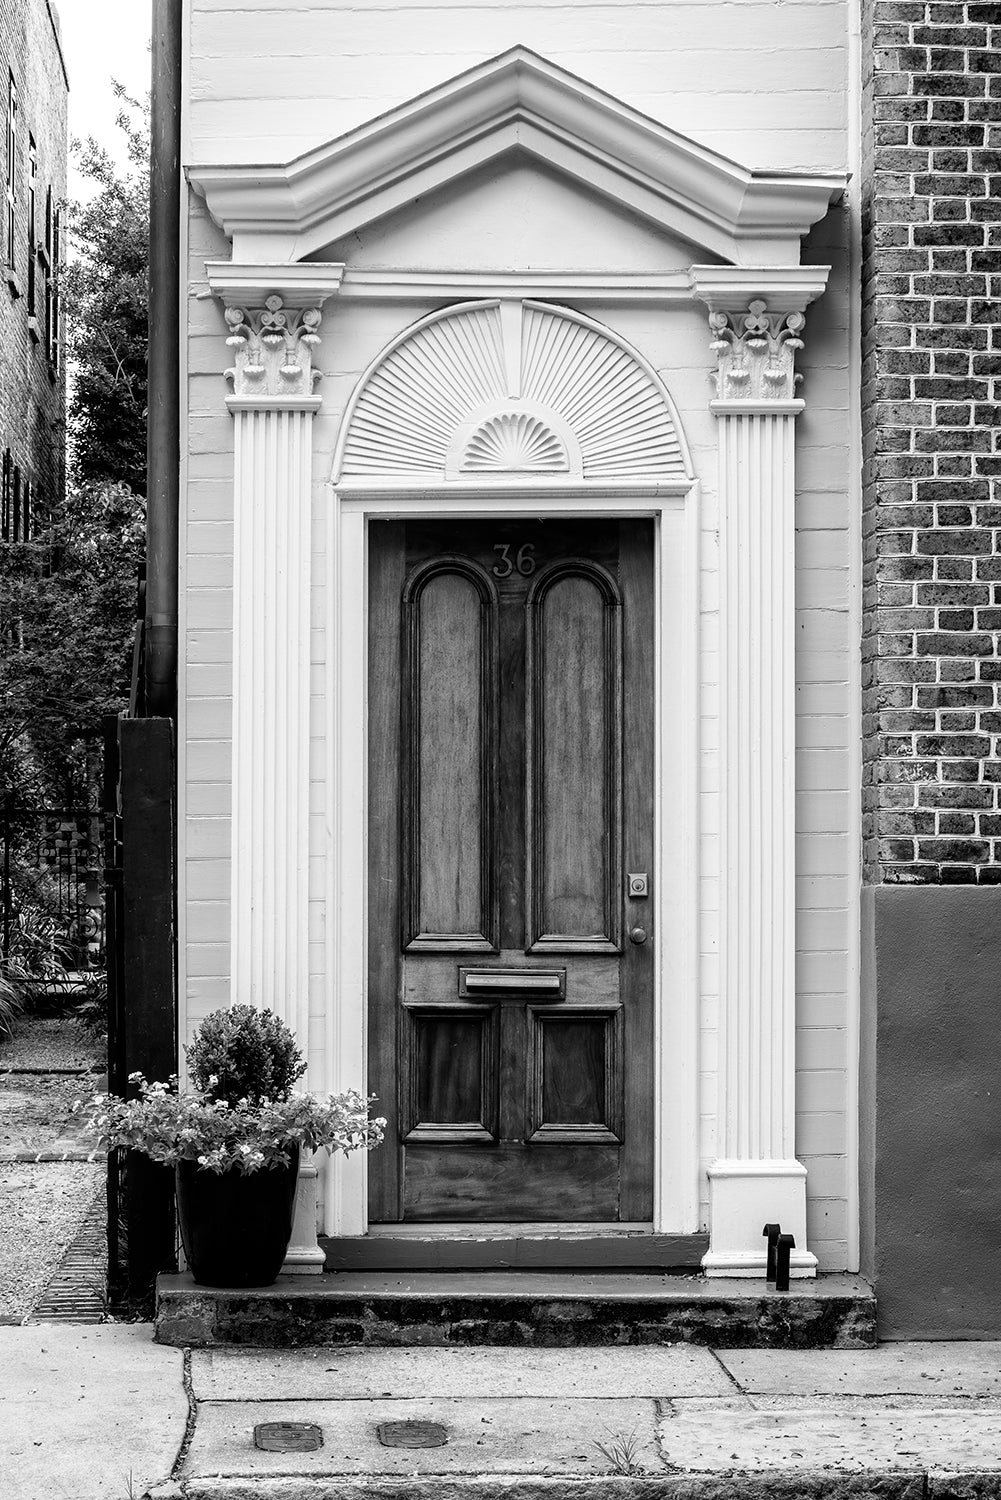 Charleston Door with Clamshell Pediment - Black and White Photograph by Keith Dotson. Buy a fine art print.